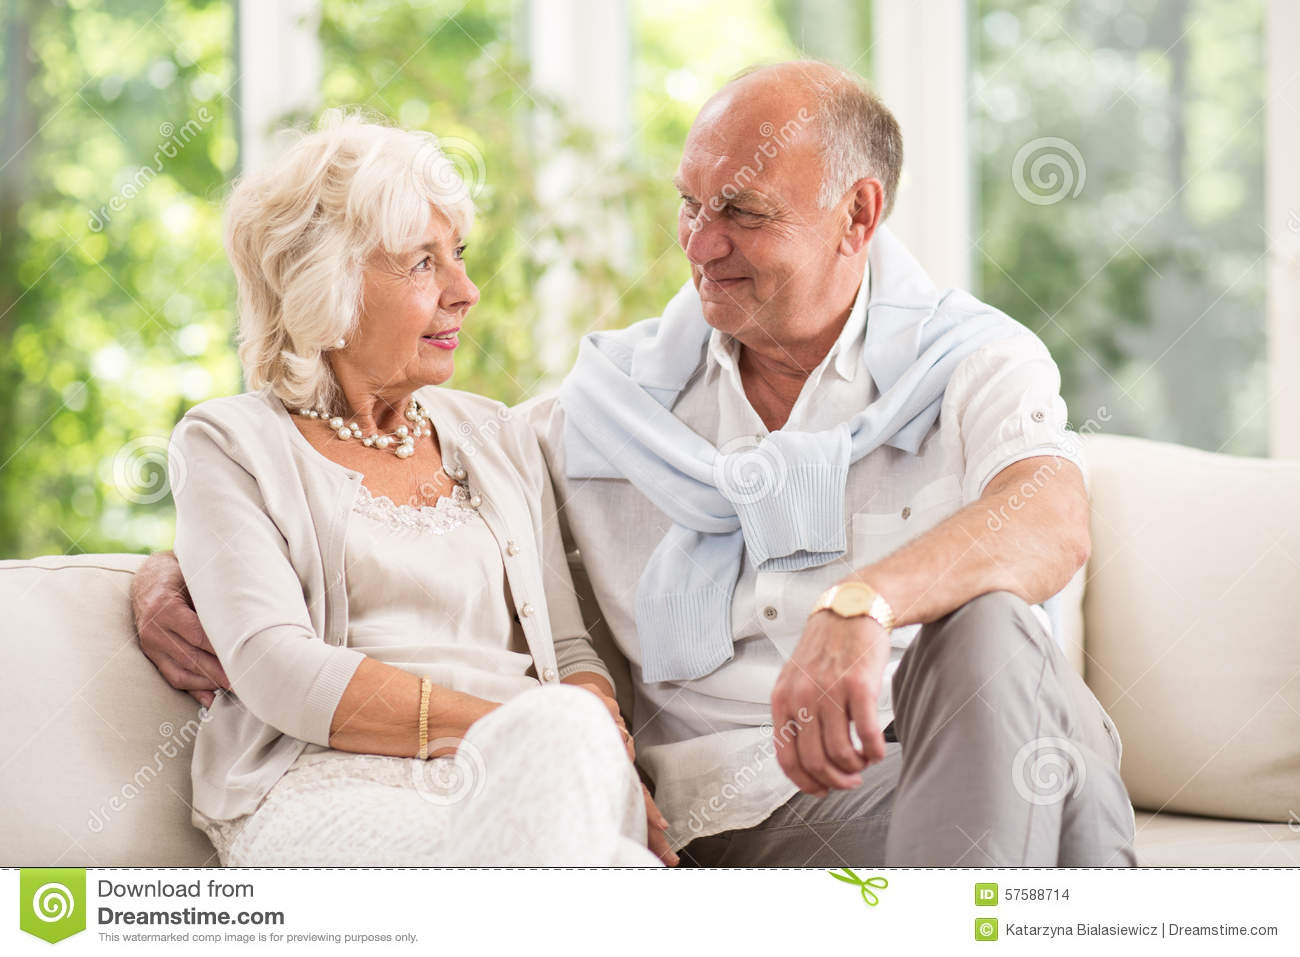 5,267 Romance Old Age Photos - Free & Royalty-Free Stock Photos from Dreamstime